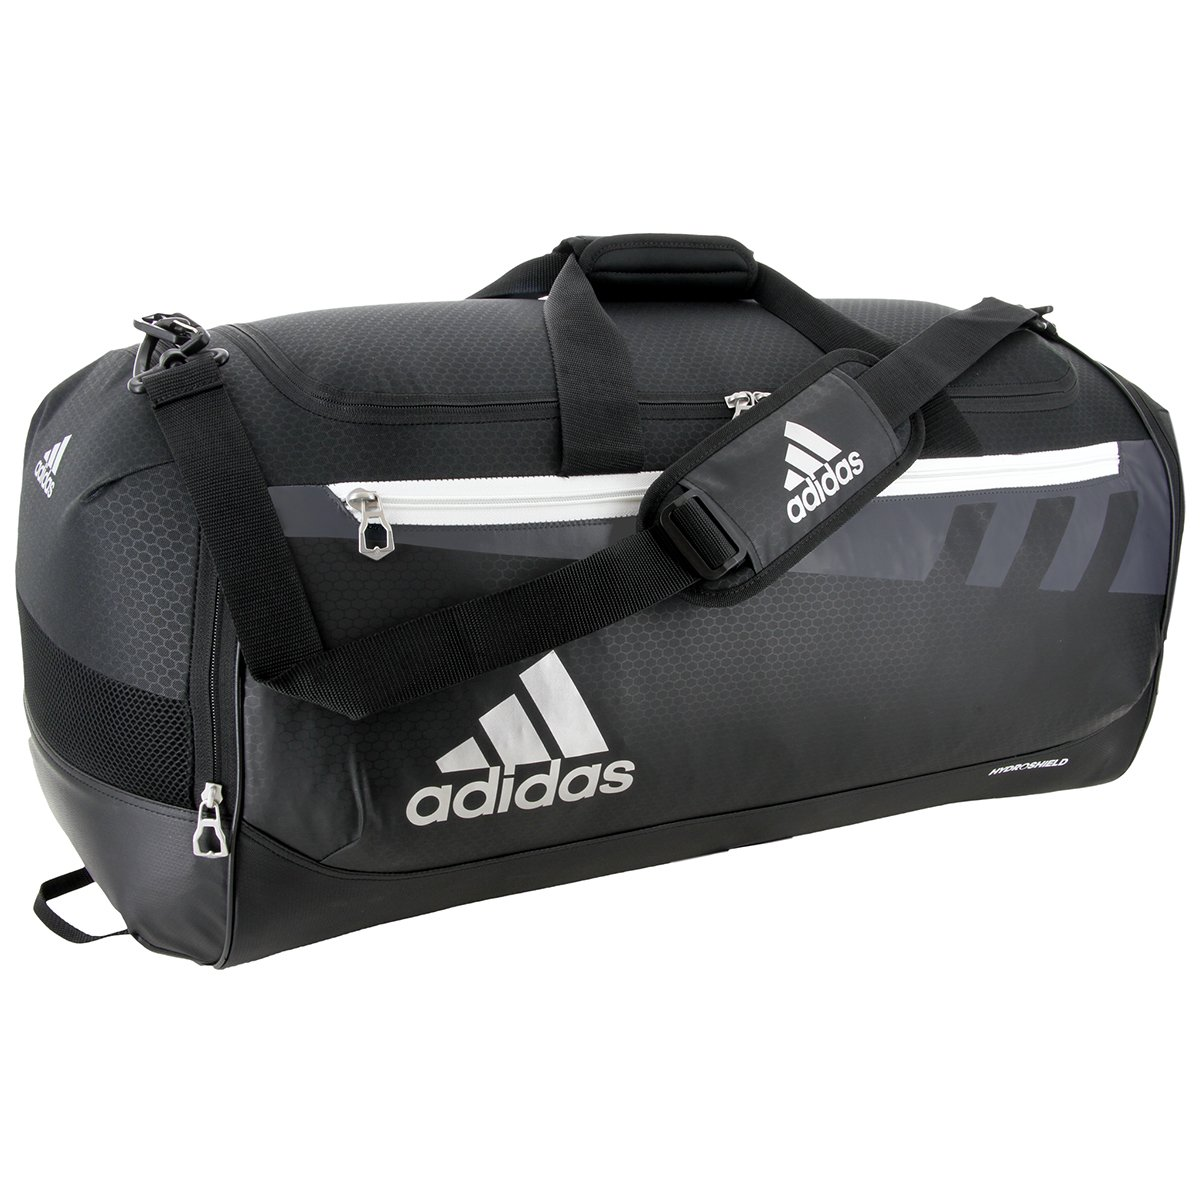 2d6ffff500 Amazon.com  adidas Team Issue Duffel Bag  Sports   Outdoors